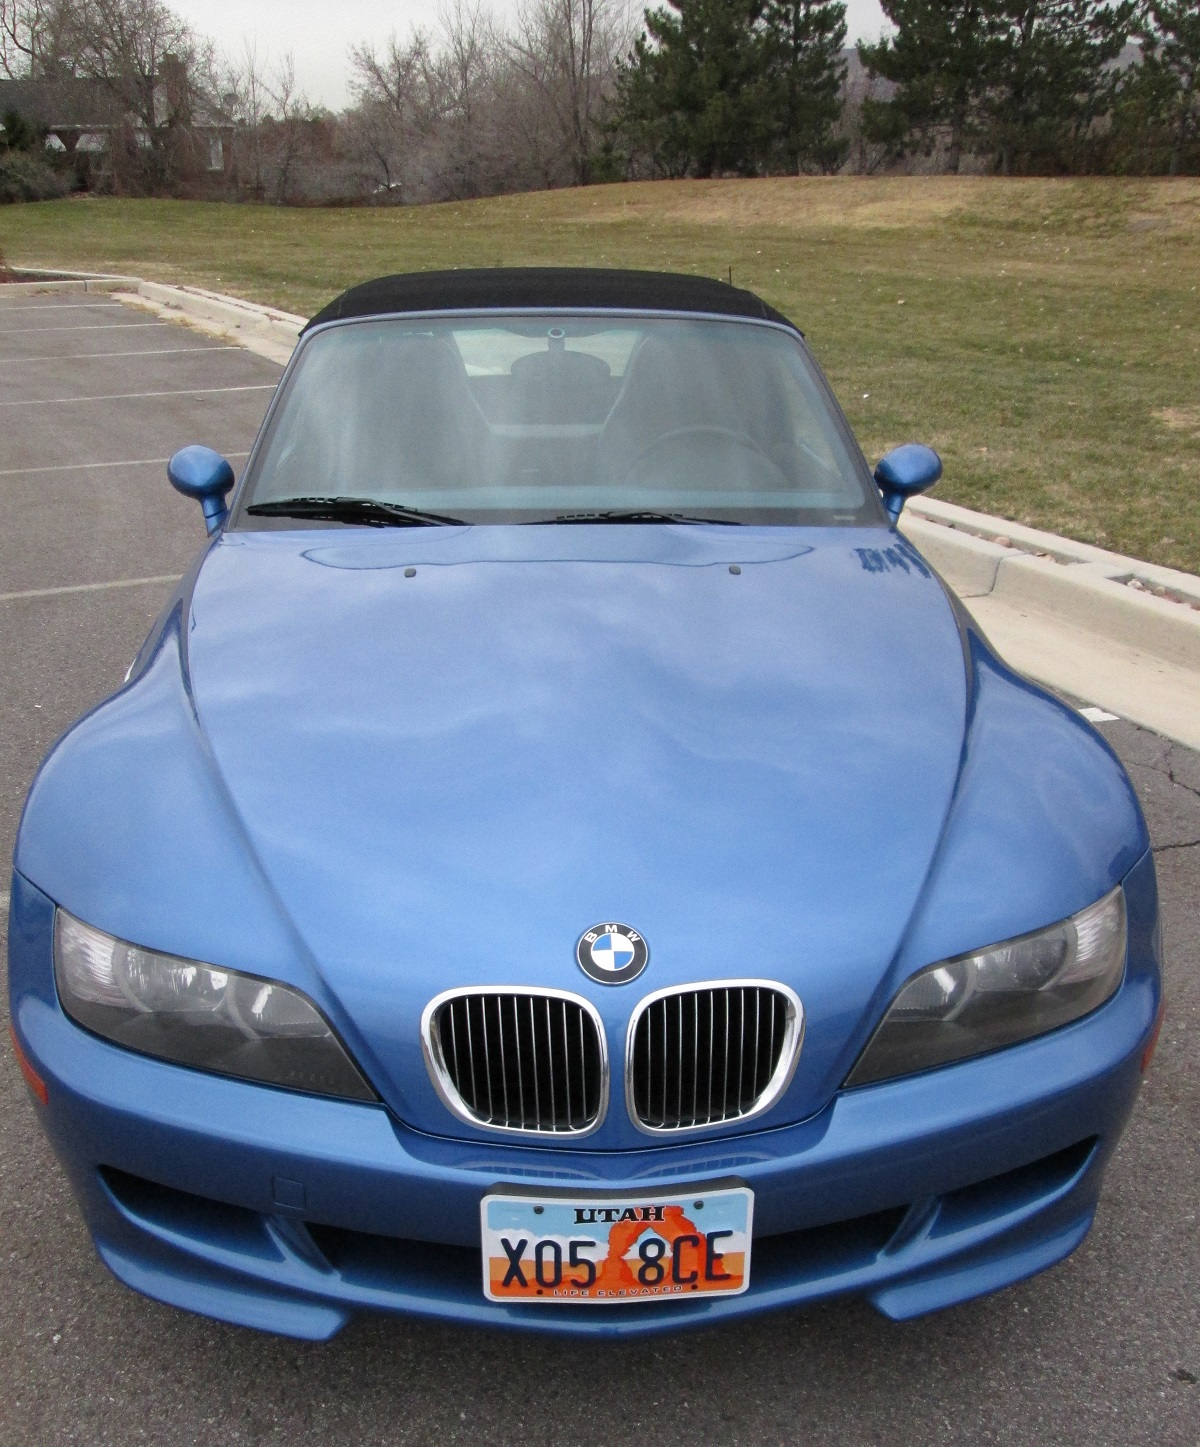 Bmw Z3 Roadster 2000: Buy Used 2000 BMW Z3 M ROADSTER CONVERTIBLE WITH FACTORY